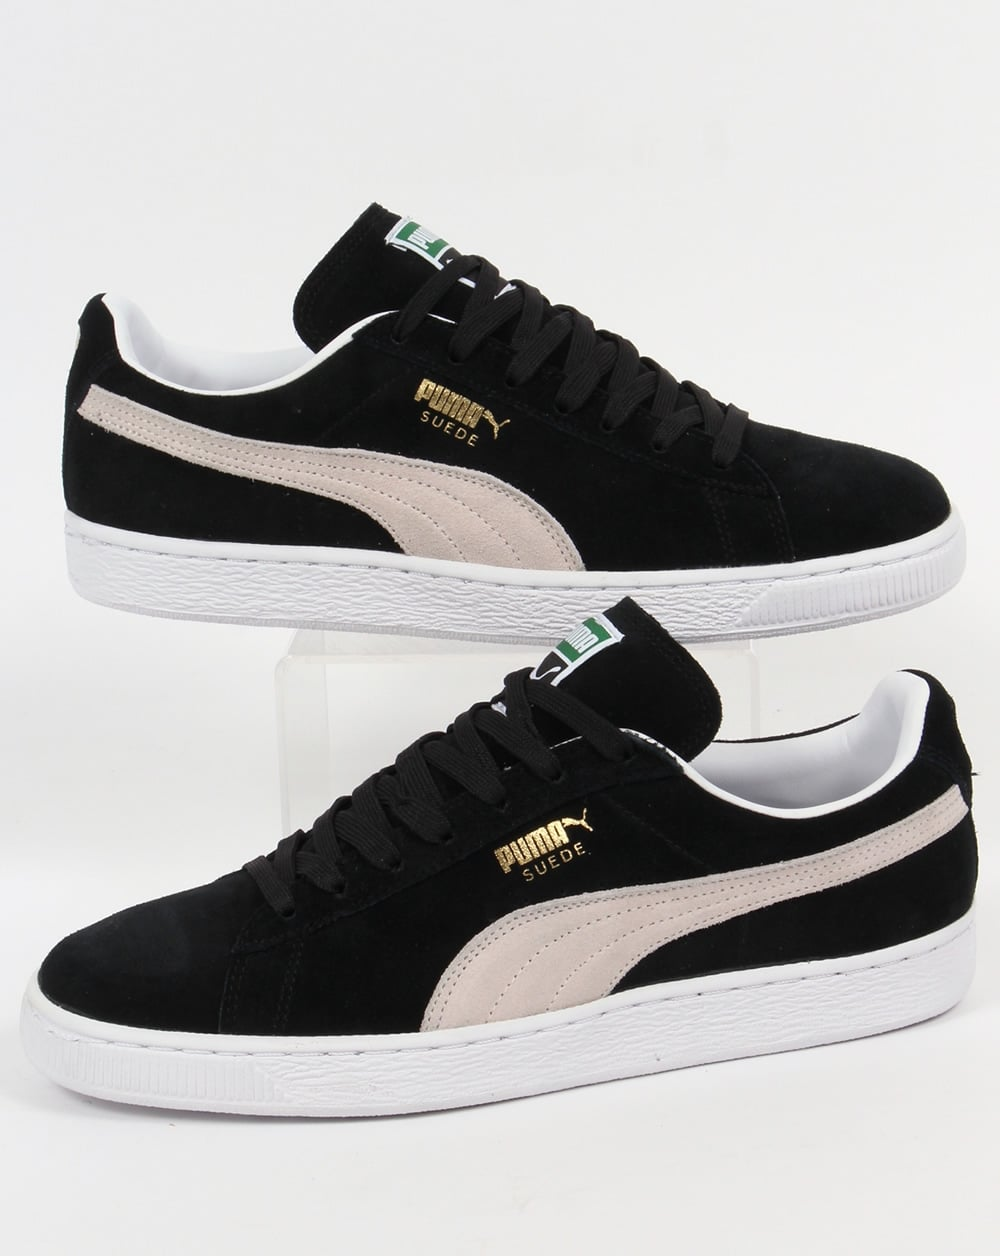 Shop the latest selection of Sale Puma Suede Shoes at Champs Sports. Find the hottest sneaker drops from brands like Jordan, Nike, Under Armour, New Balance, Timberland and a ton more. We know game. Free shipping on select products.